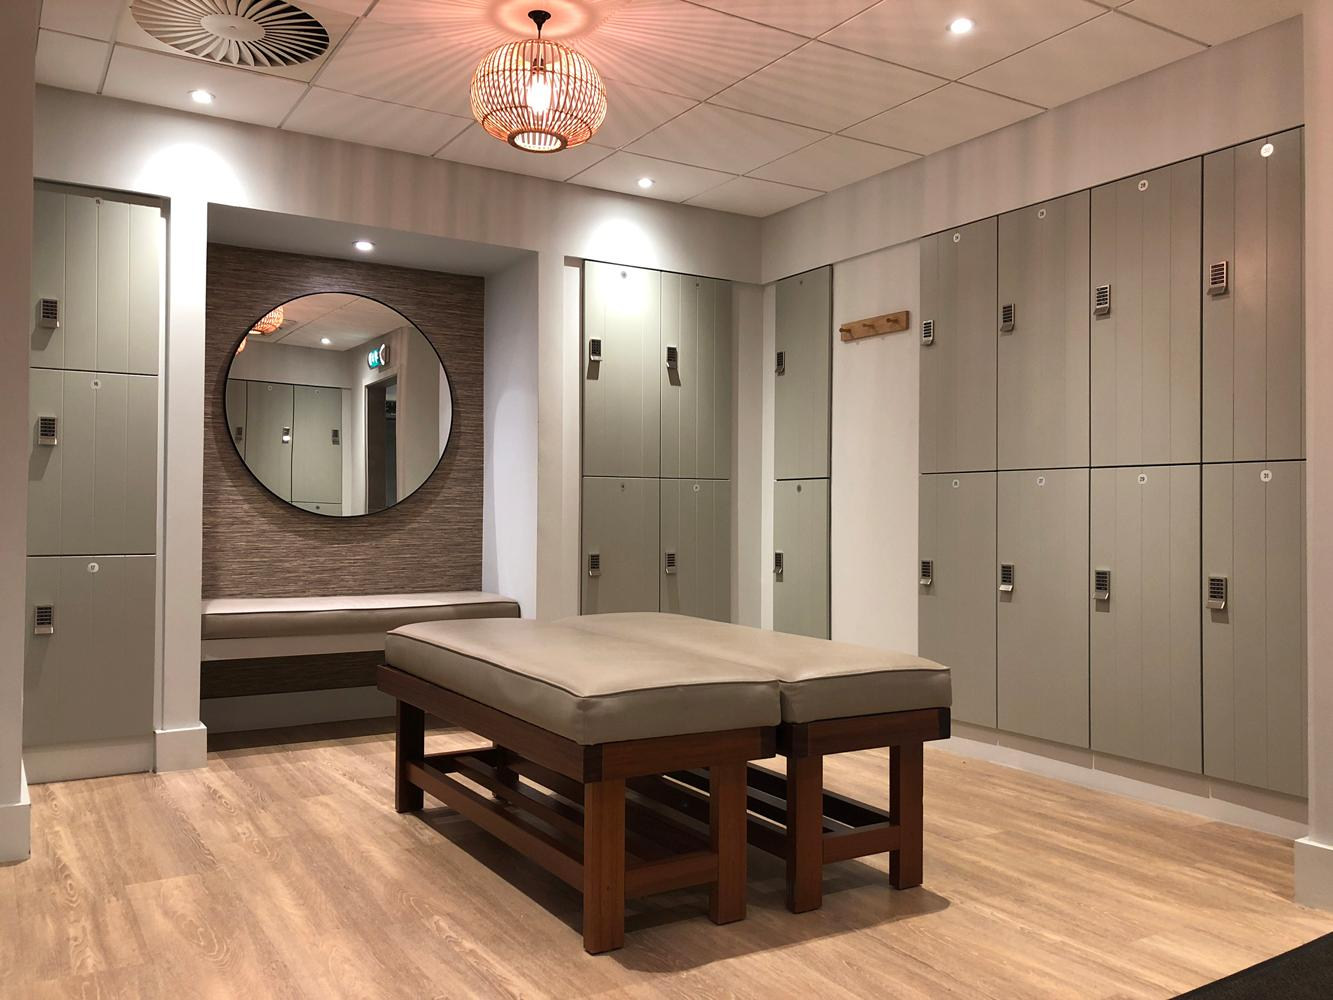 Crown has evolved into arguably the UK's leading bespoke timber changing room furniture manufacturer and installer